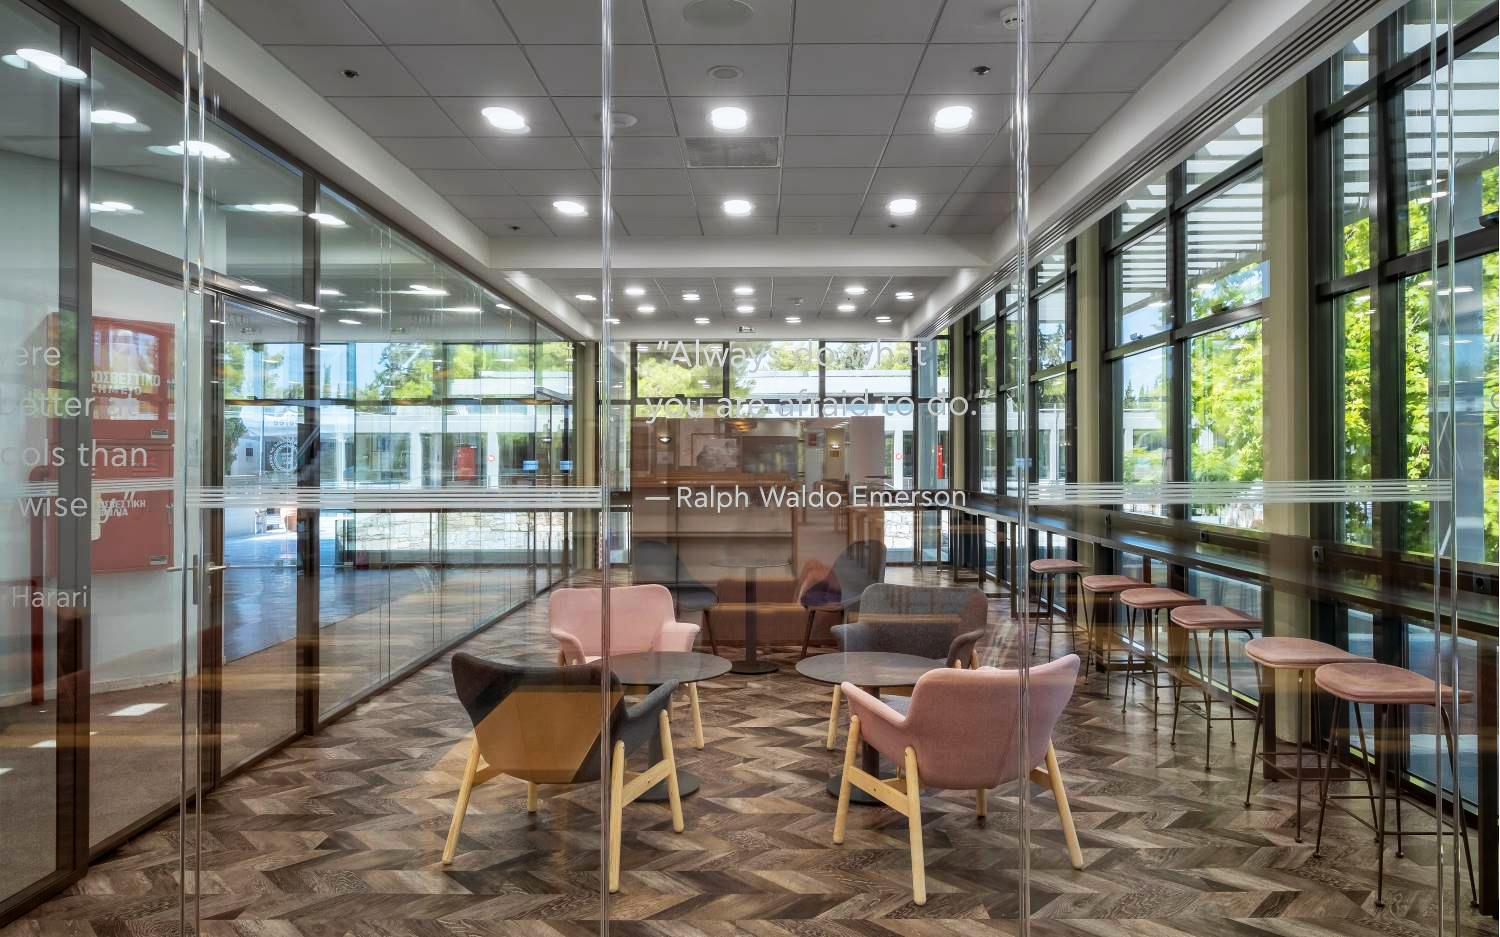 Library Cafe - ACG (1)